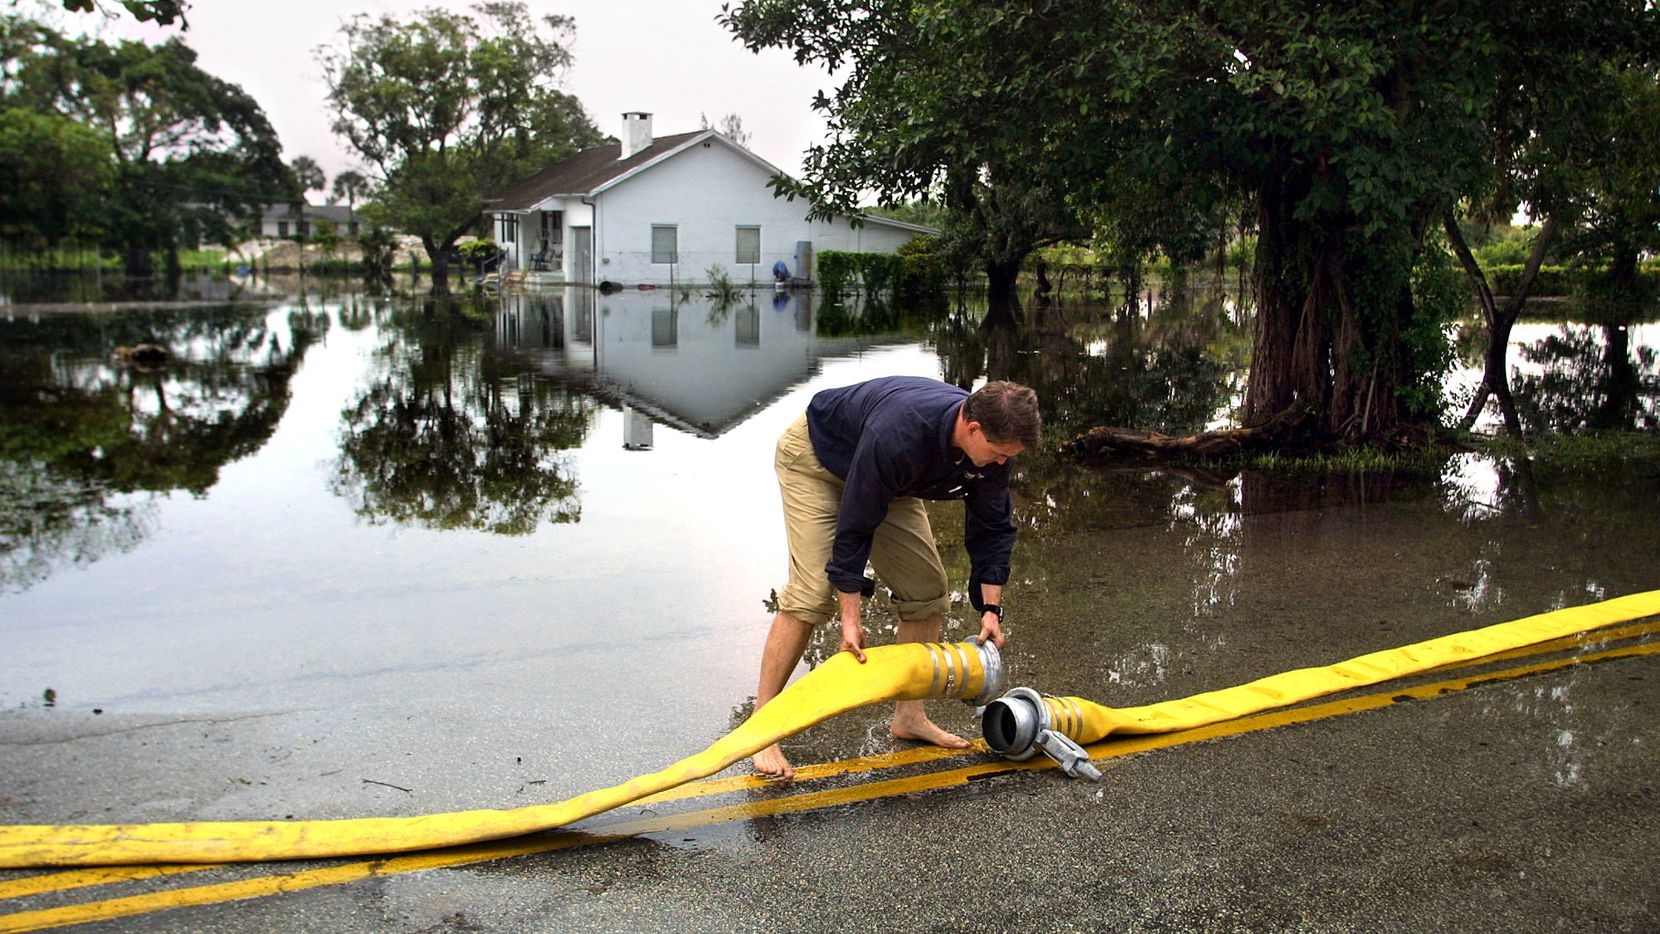 In this 2003 file photo, Jeff Cooper, district manager for United Rentals, a company hired by Broward County, connects sections of a 6-inch hose to help pump out floodwaters in a neighborhood in unincorporated Broward County, Fla., near Fort Lauderdale.